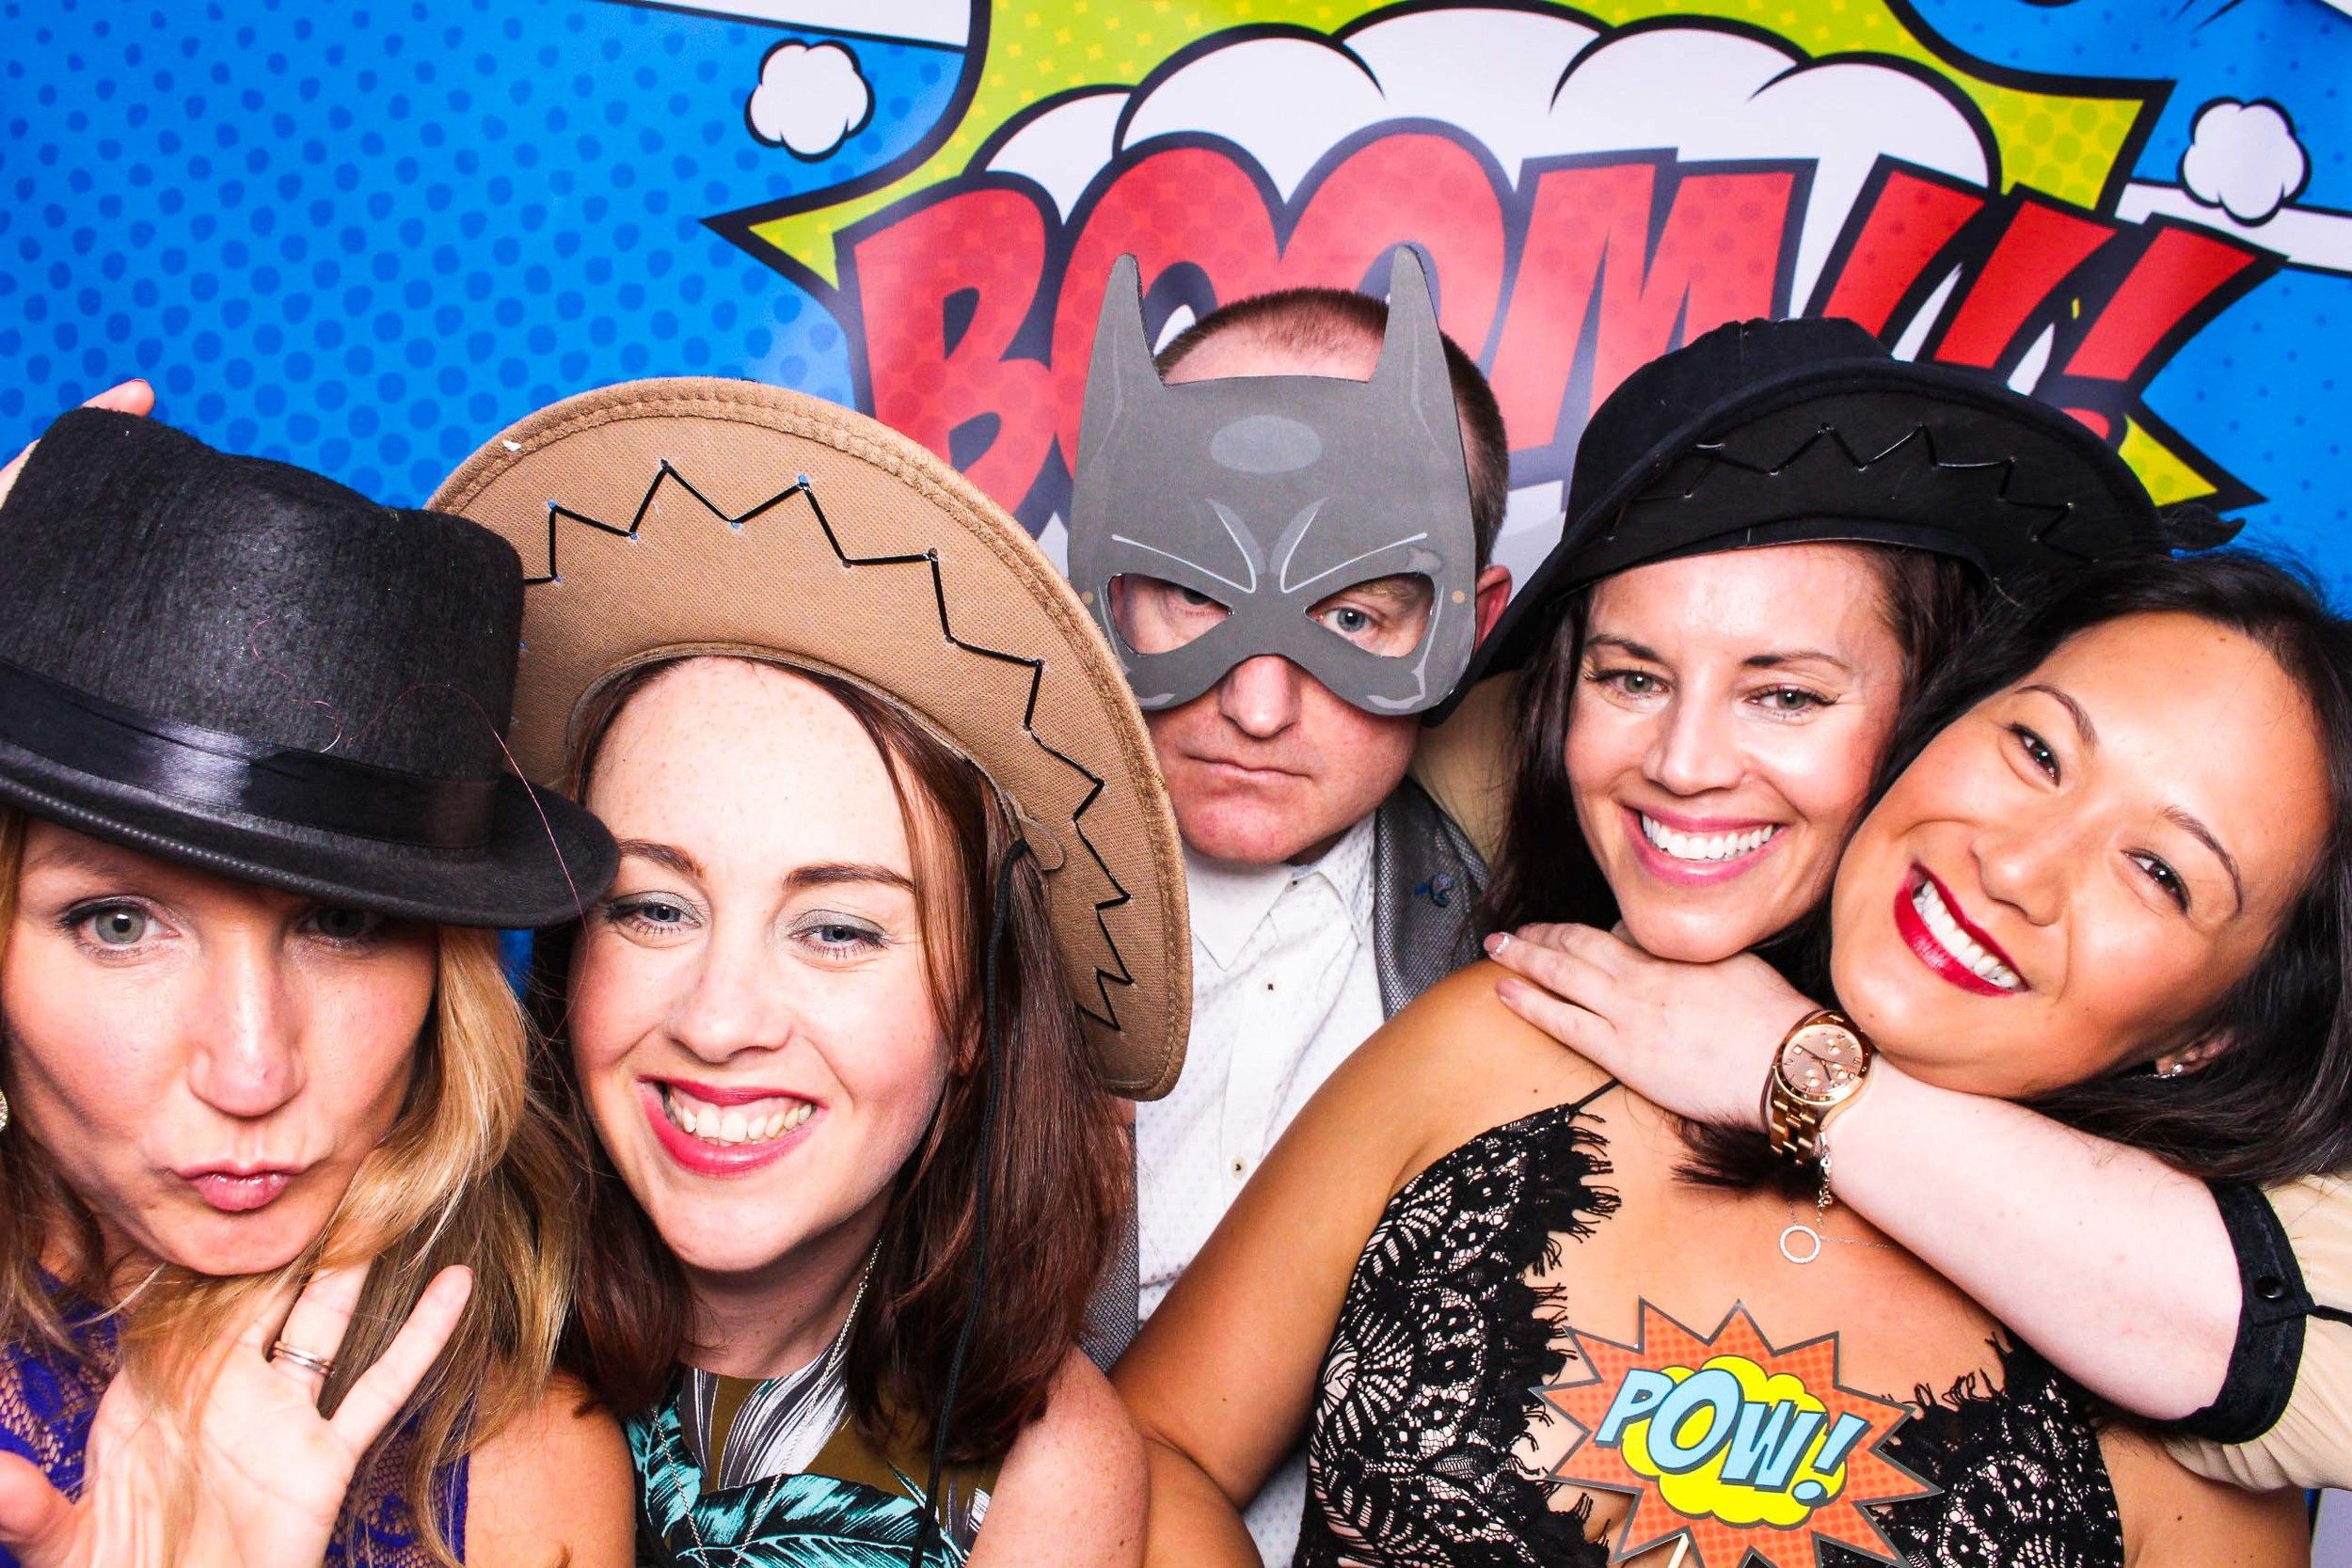 Fotoauto Photo Booth Hire - Shop Direct-165.jpg